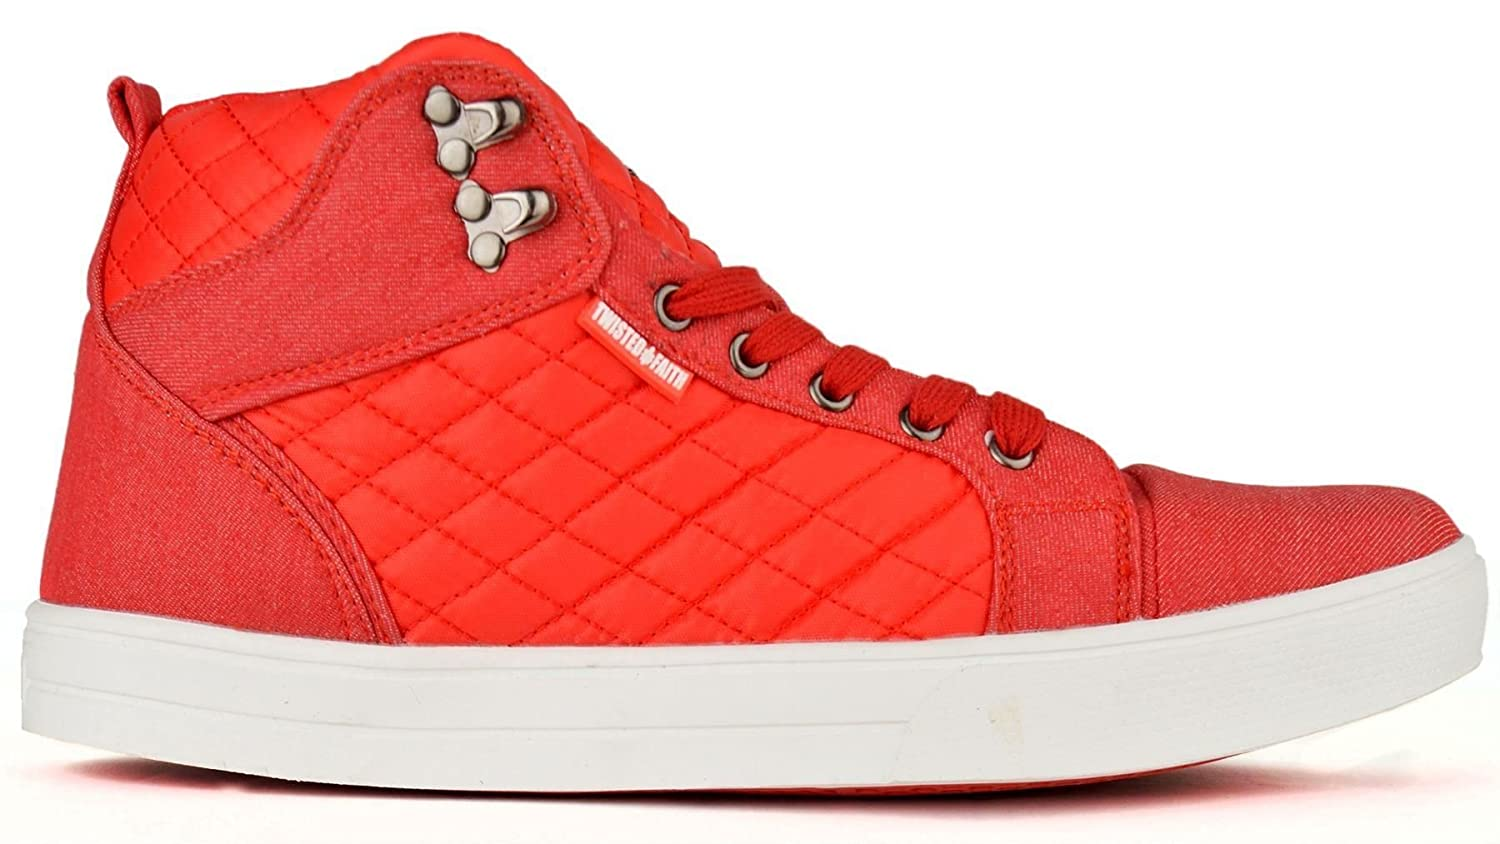 01222fe27a2 Twisted Faith 'Maverick' Men's High-Top Quilted Canvas Trainers